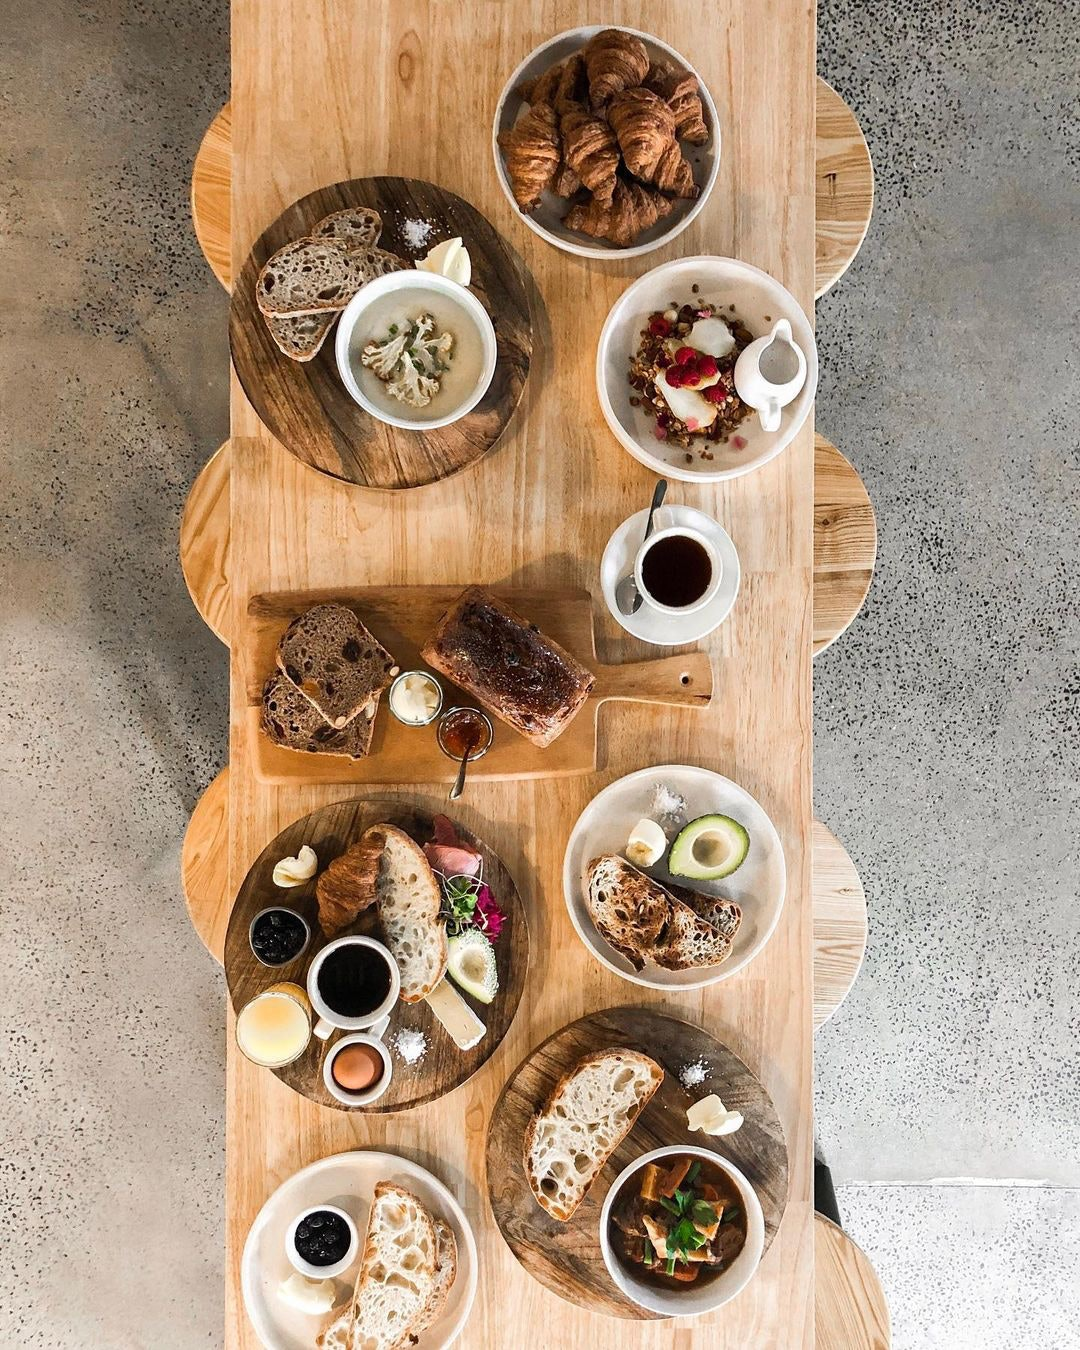 Grazing table with pastries and breads and dips